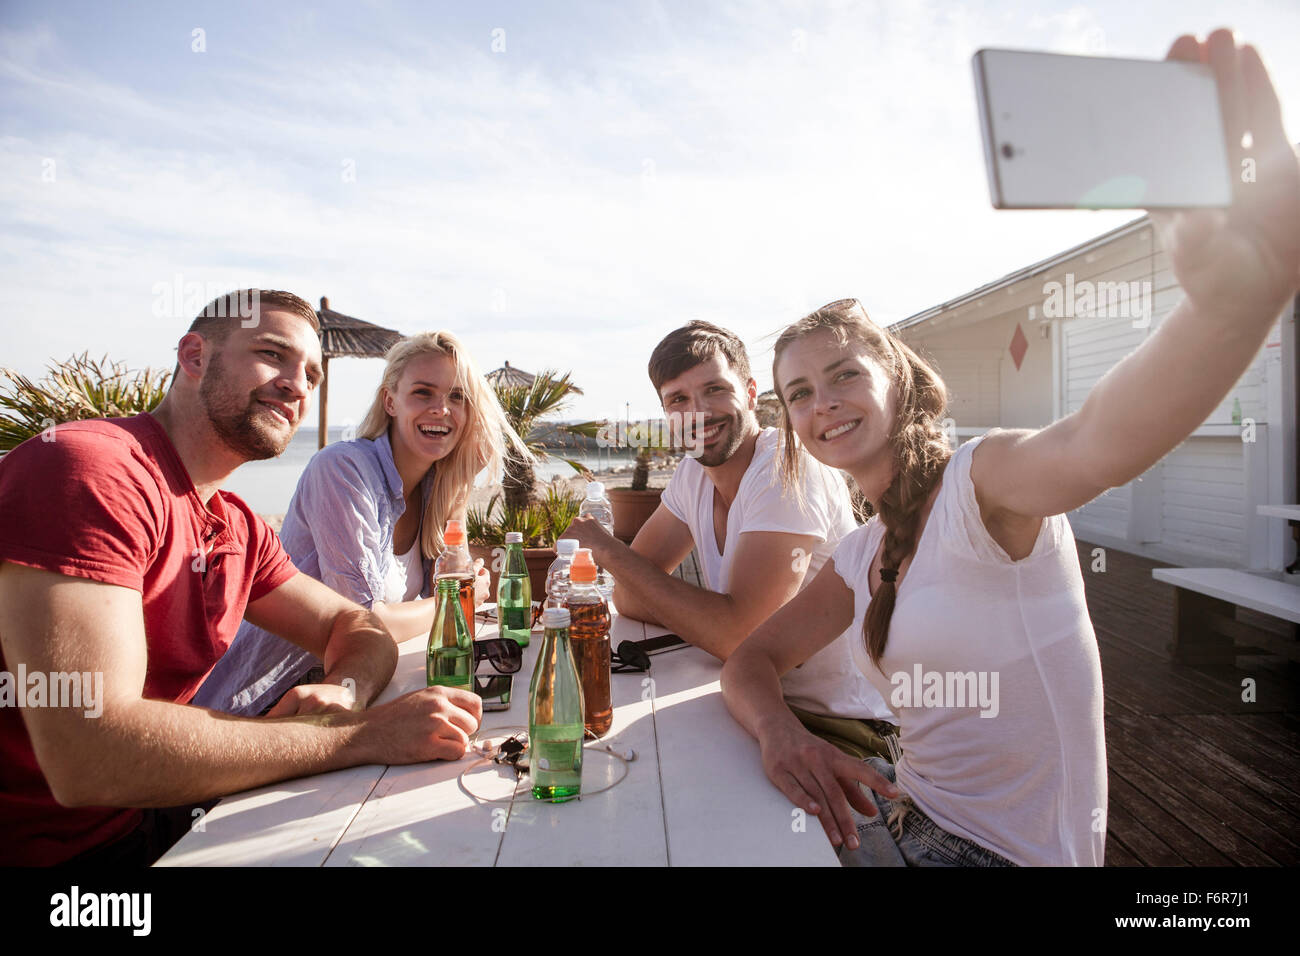 Group of friends taking a self portrait in beach bar - Stock Image